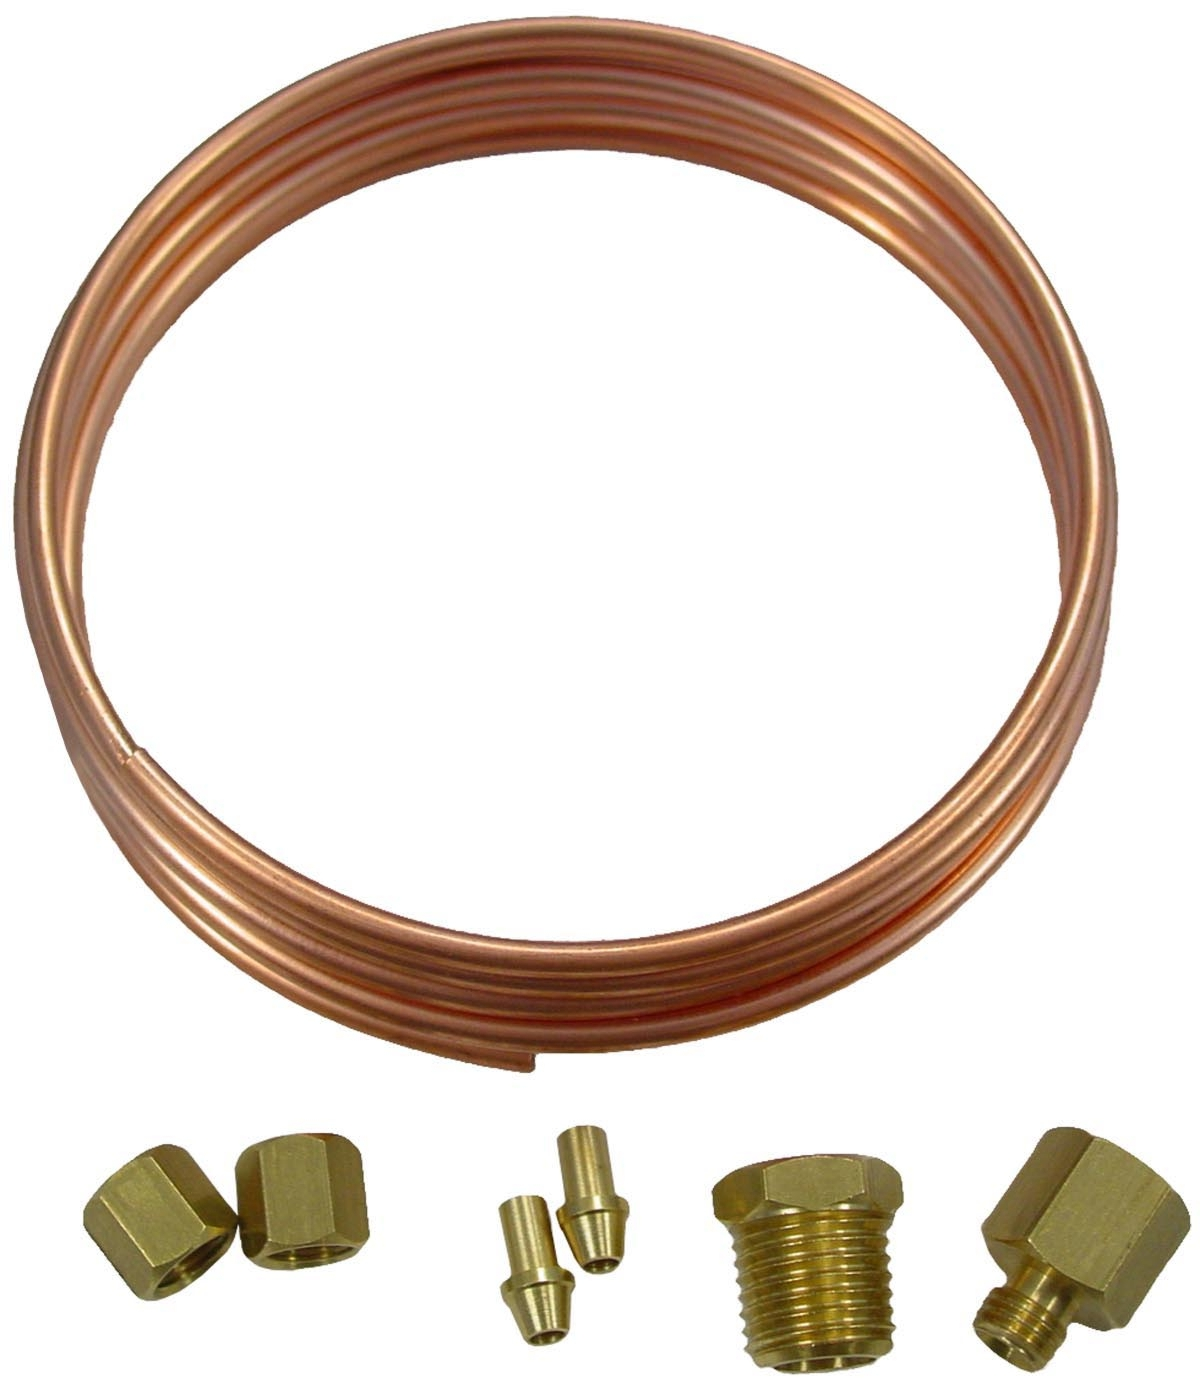 hight resolution of oil pressure gauge copper line kit